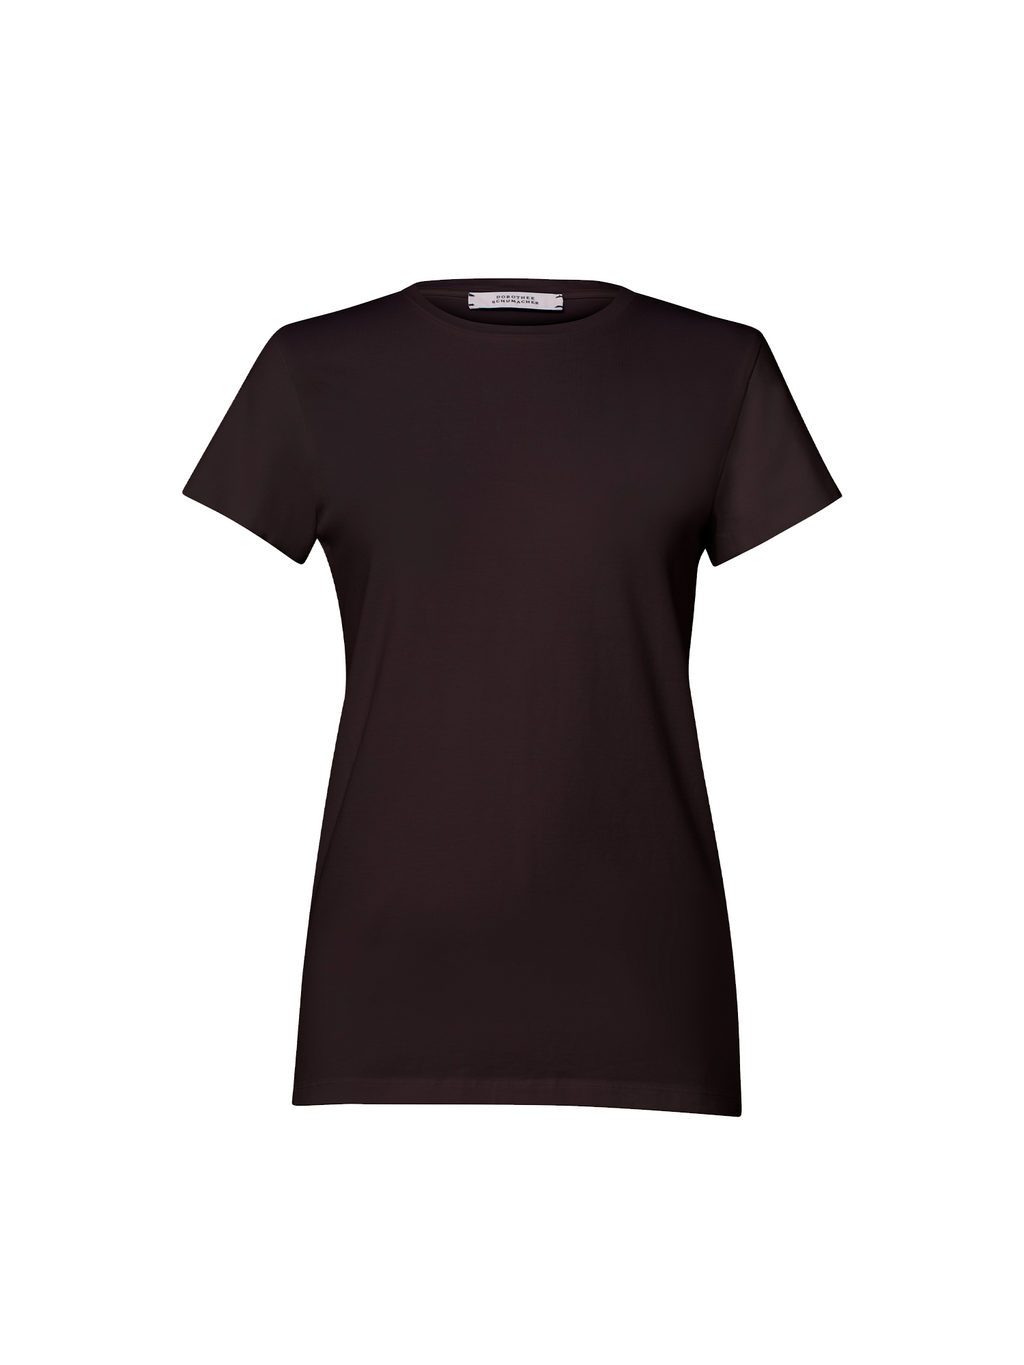 Dorothee Schumacher All Time Favourites T-Shirt